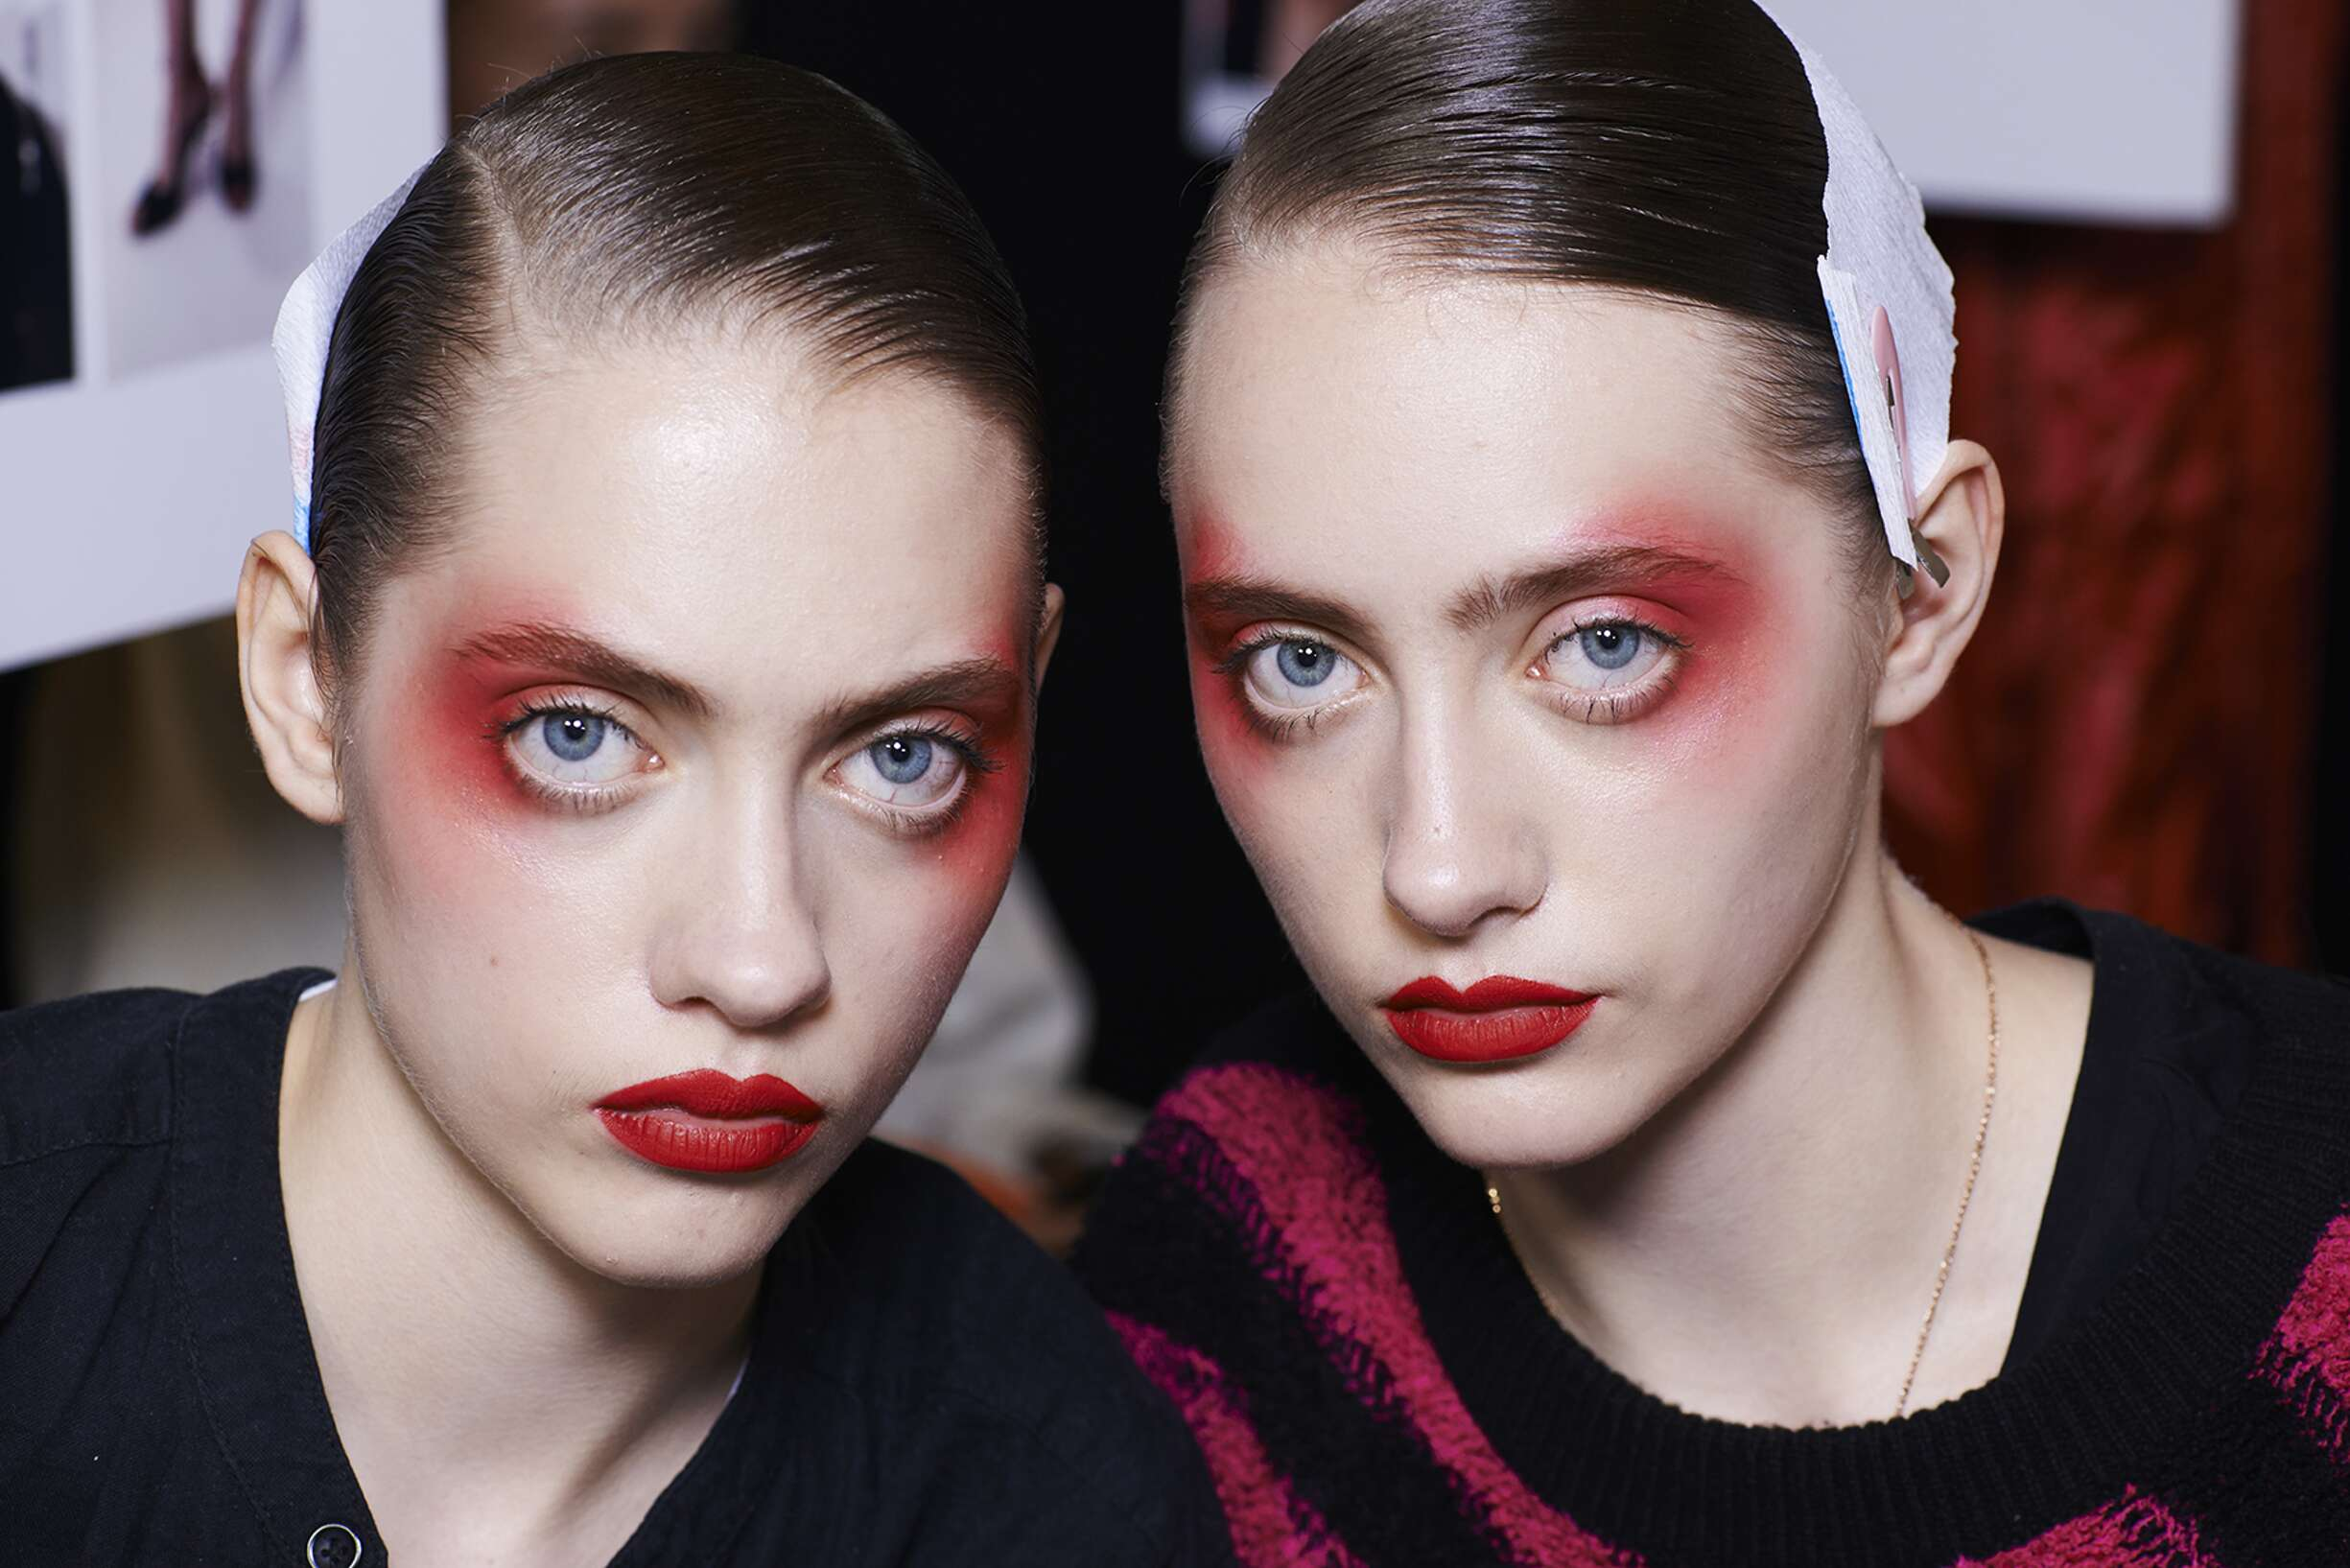 Backstage Make Up Kenzo Models